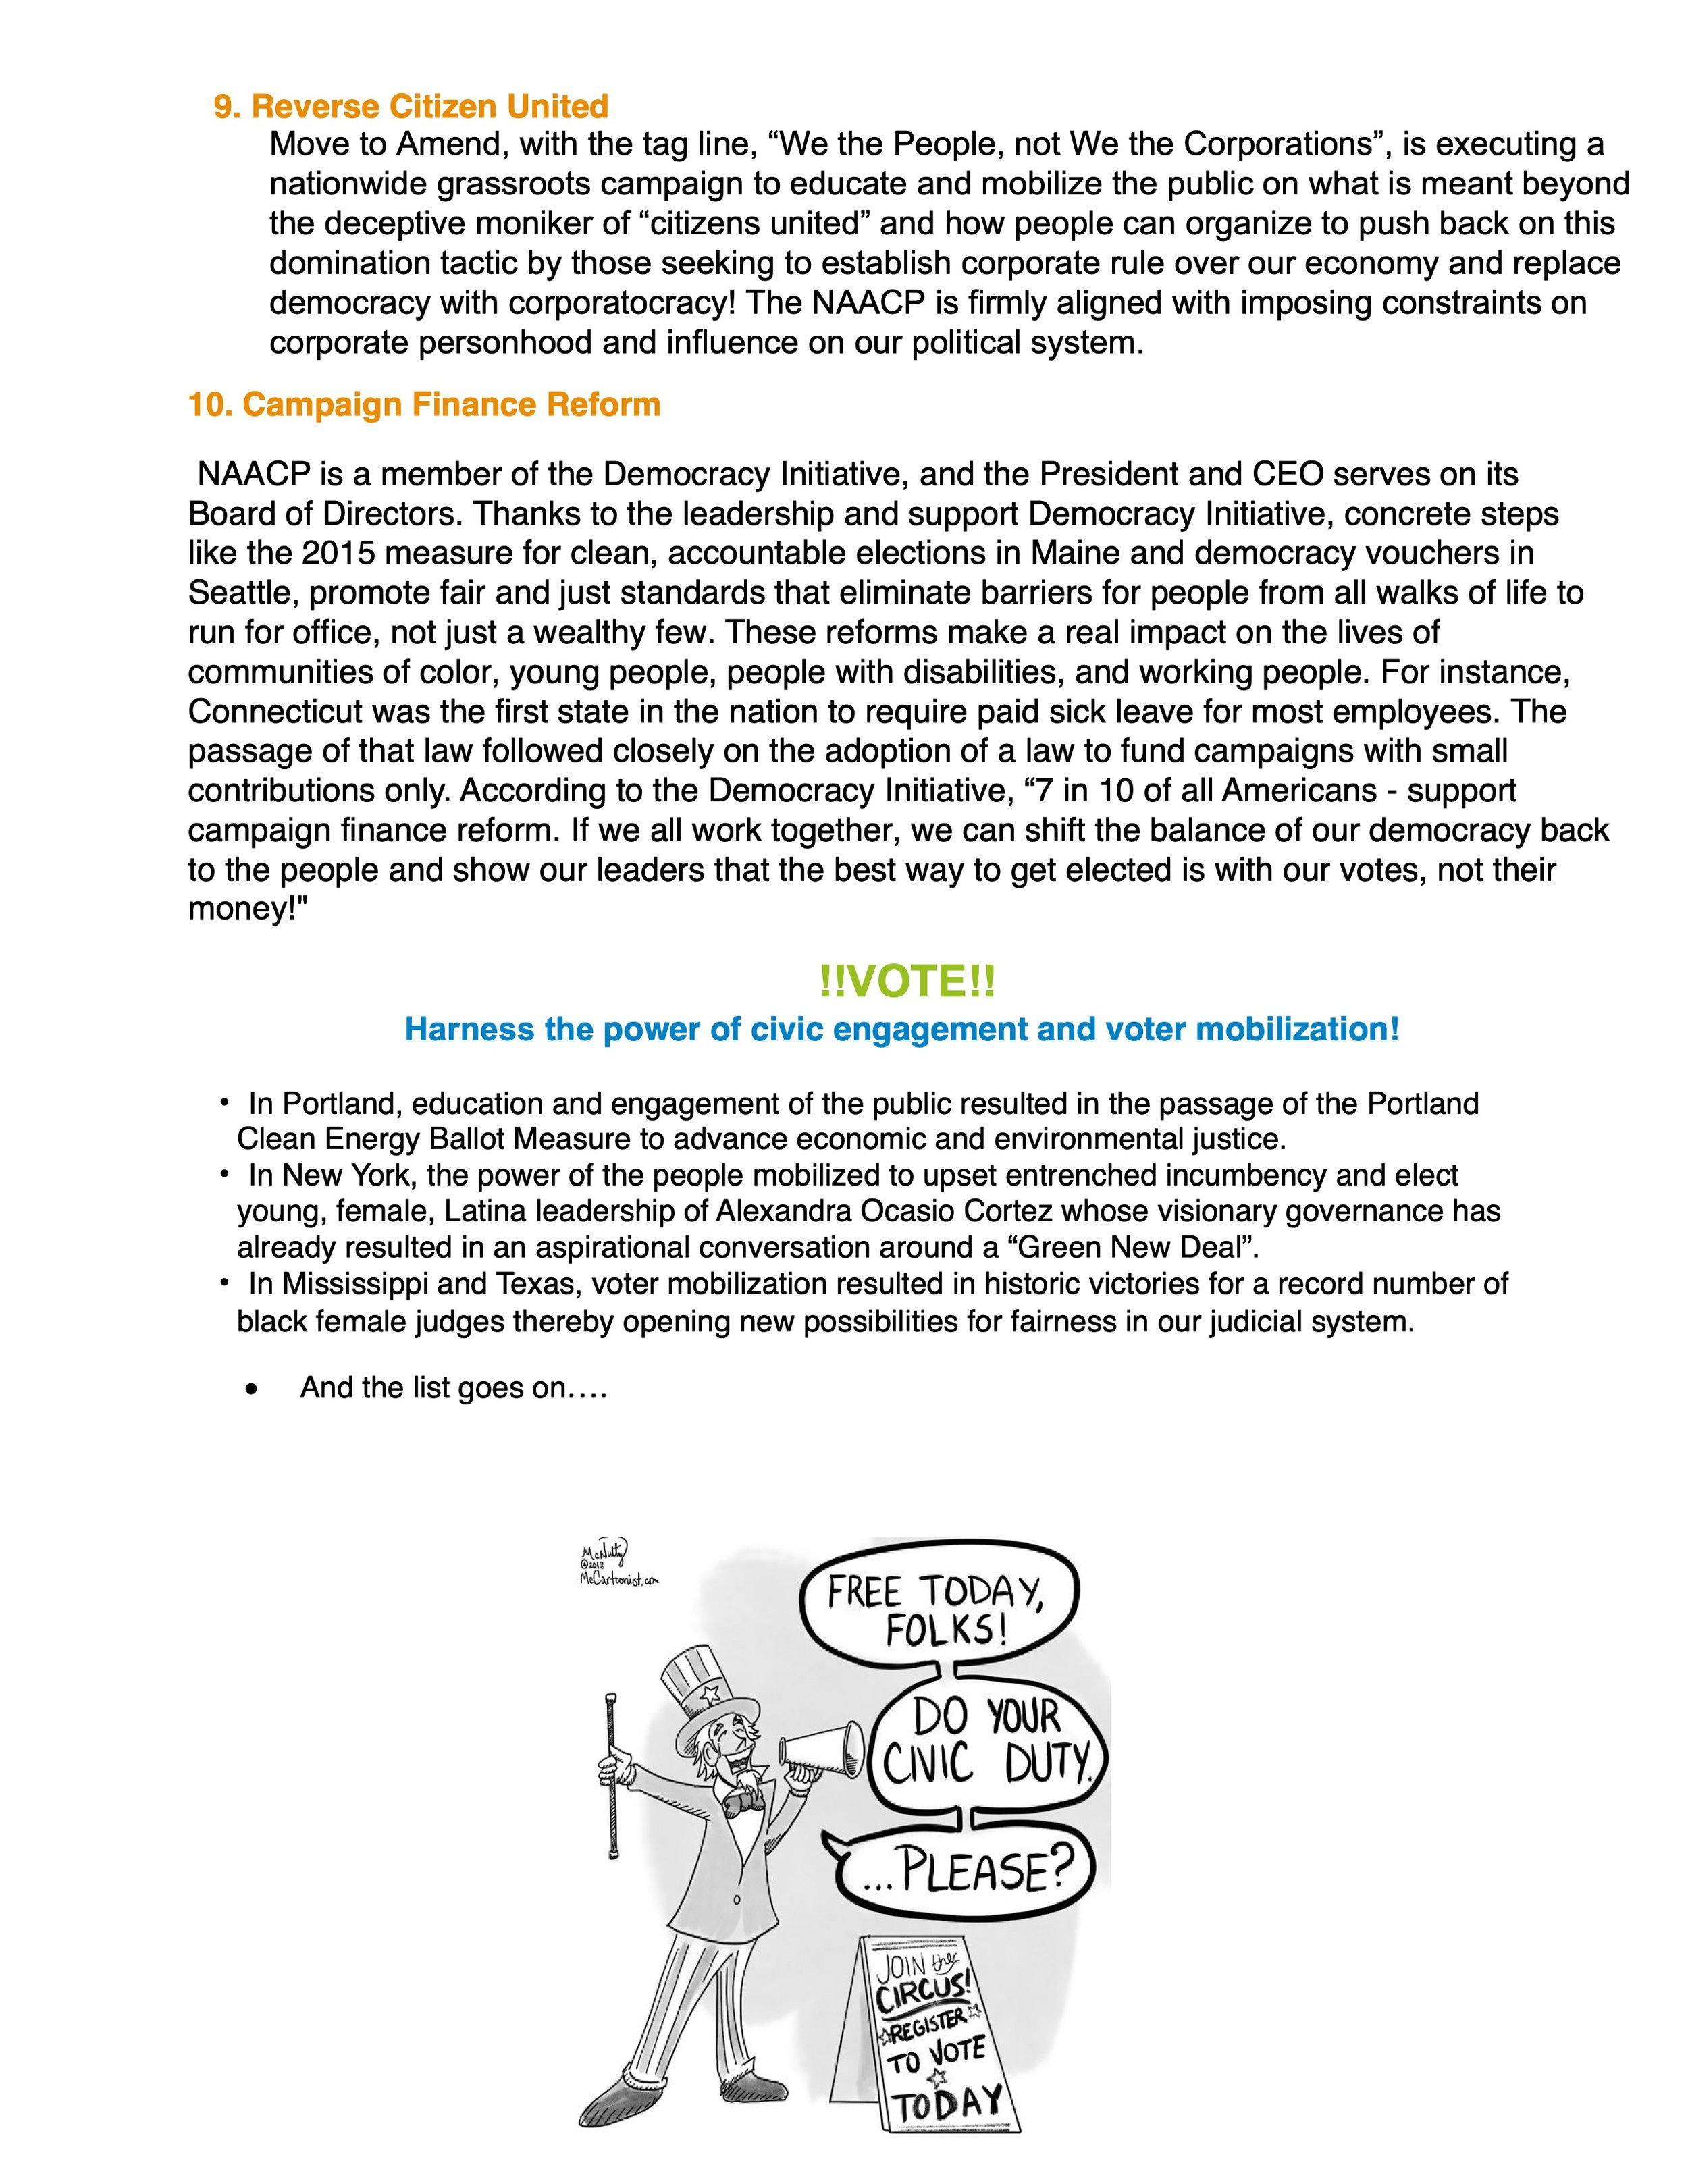 Fossil-Fueled-Foolery-An-Illustrated-Primer-on-the-Top-10-Manipulation-Tactics-of-the-Fossil-Fuel-Industry 24.jpeg